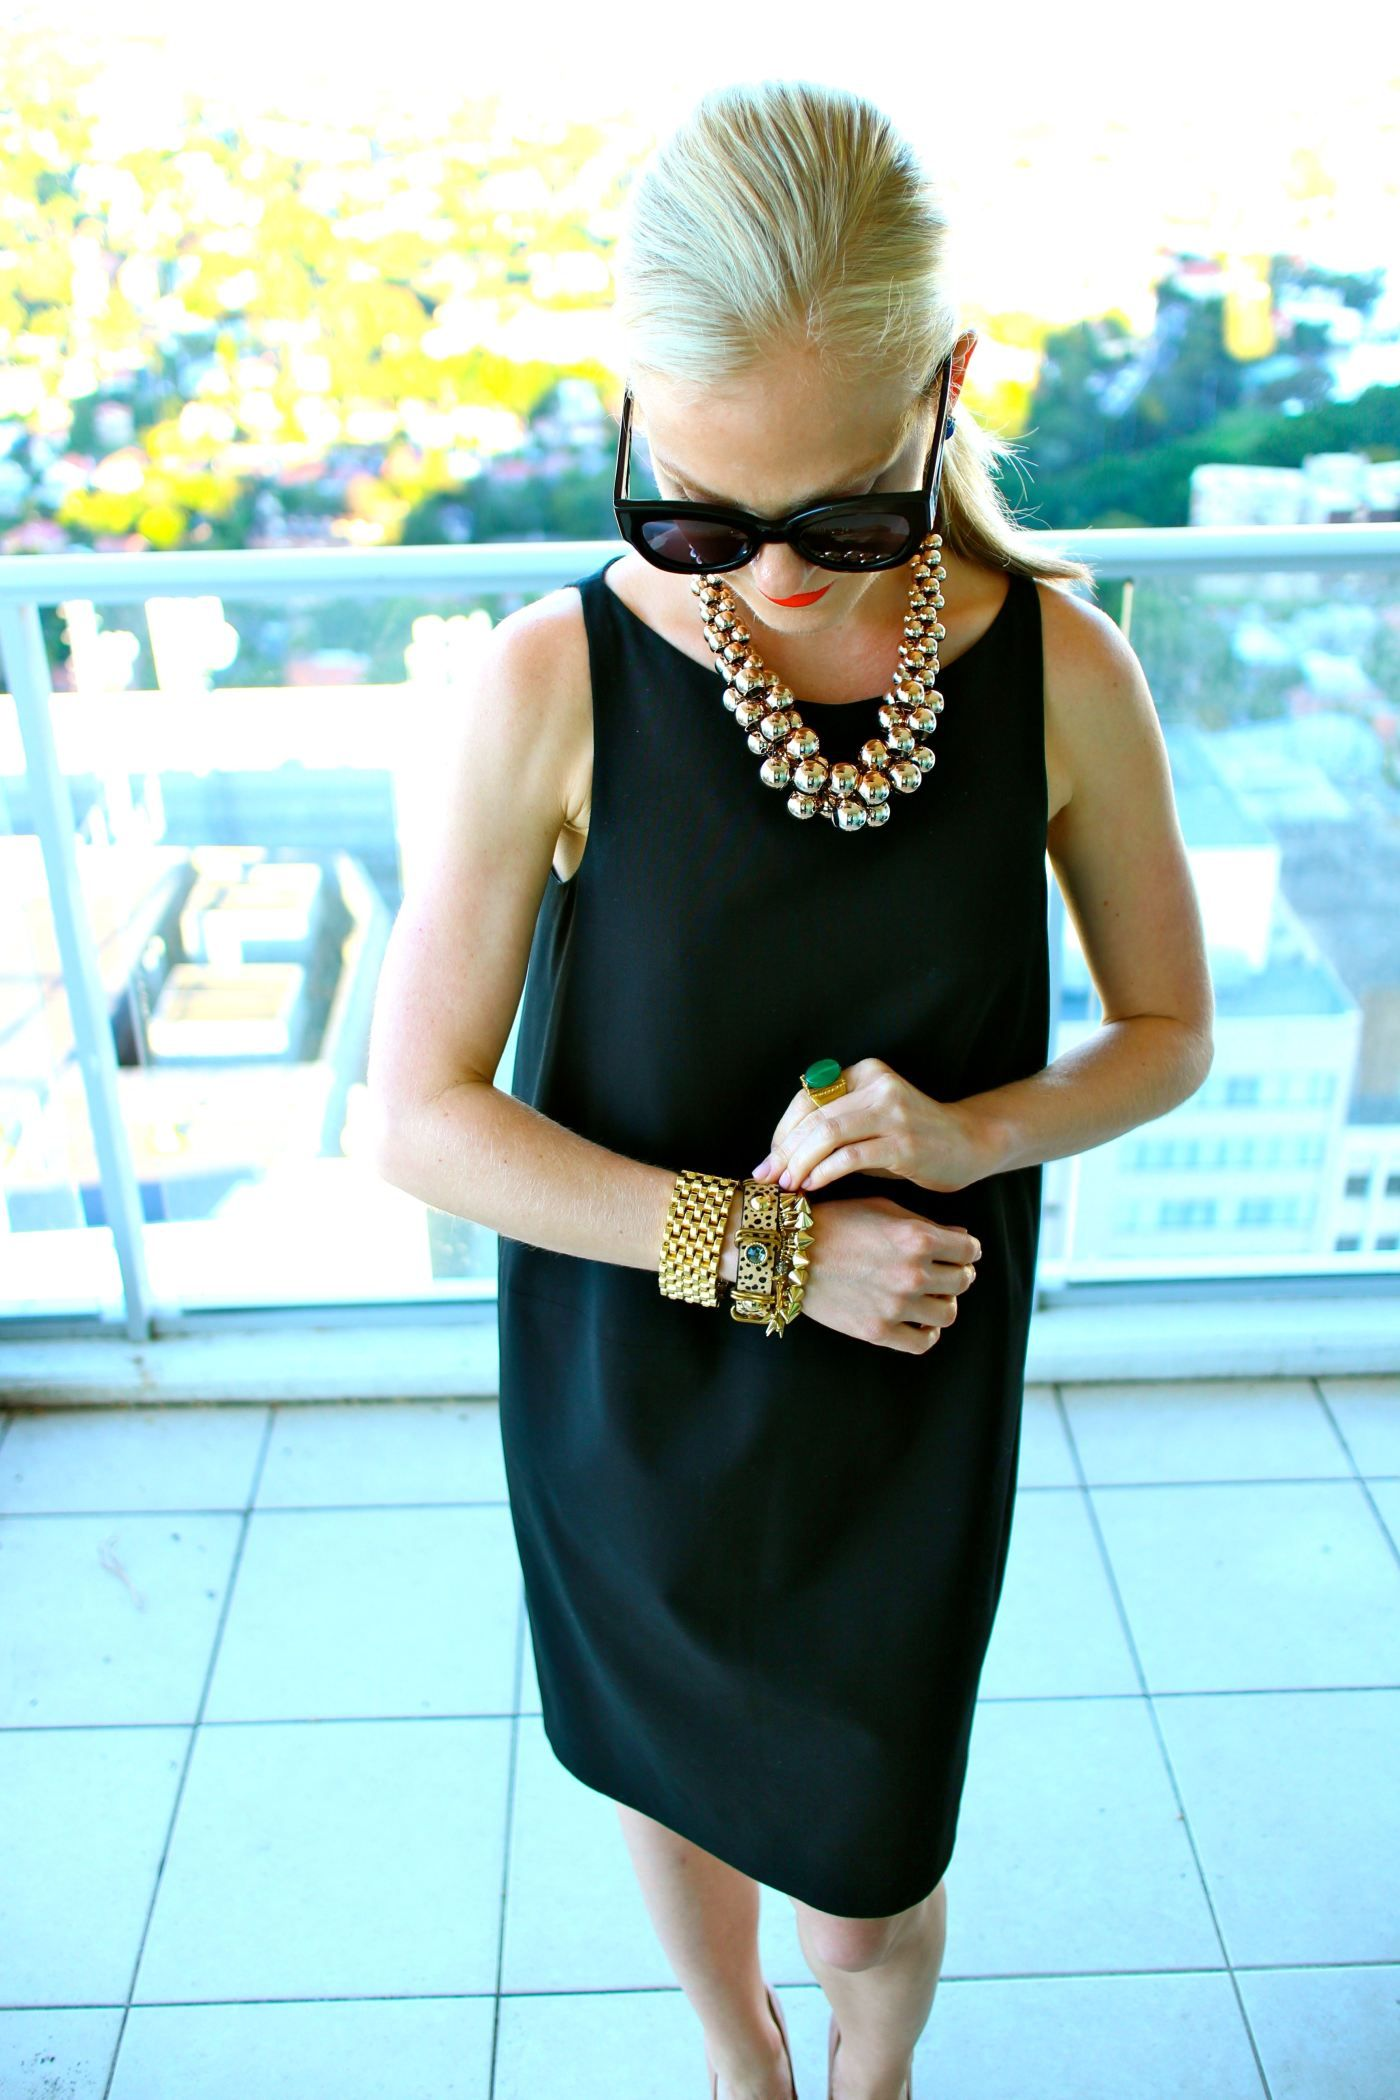 Pin By Kellyn On My Style Fashion Style Style Inspiration [ 2100 x 1400 Pixel ]